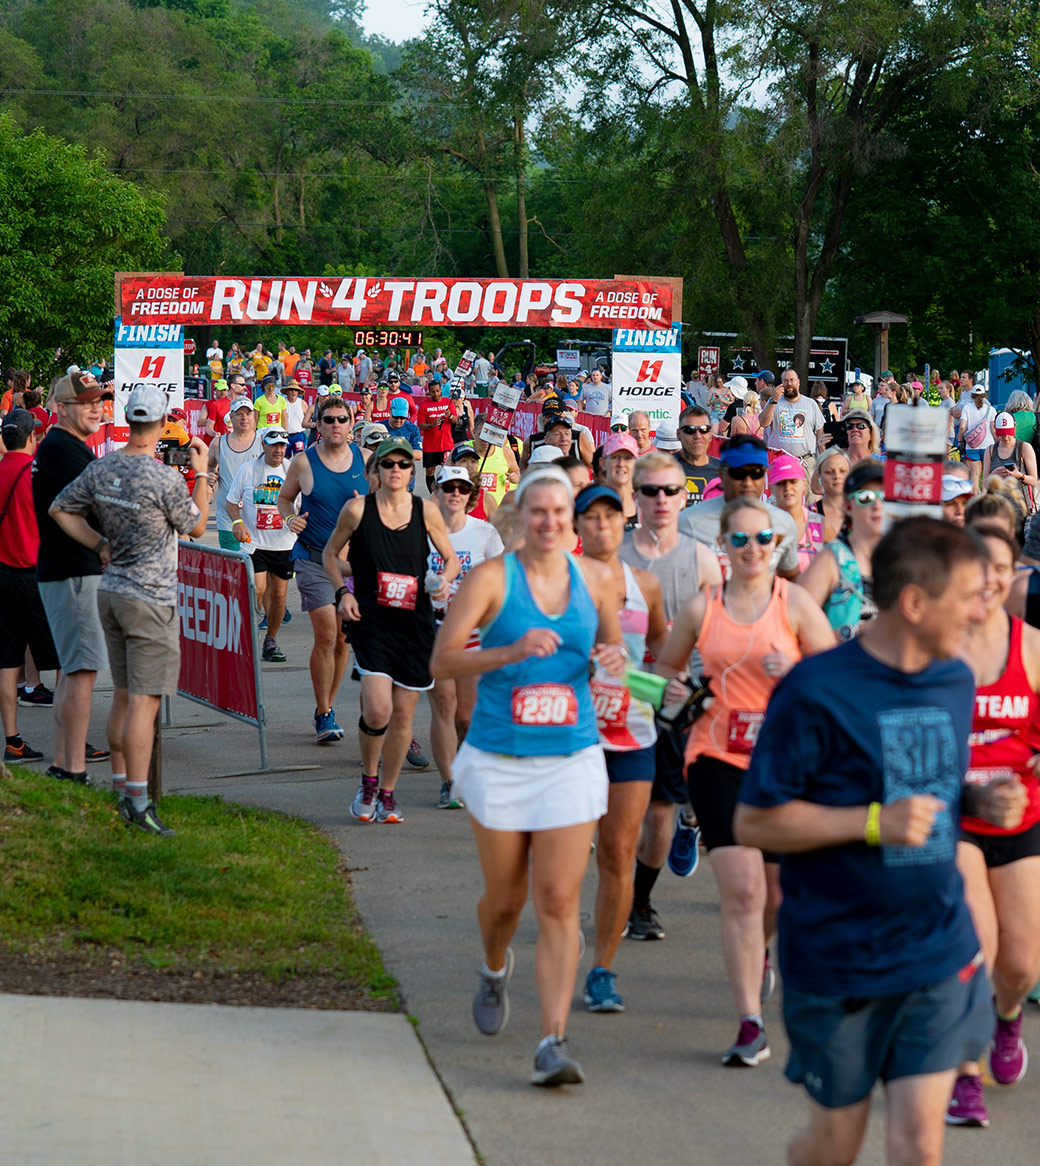 Runners at the start line at Run4Troops Marathon in Dubuque, Iowa